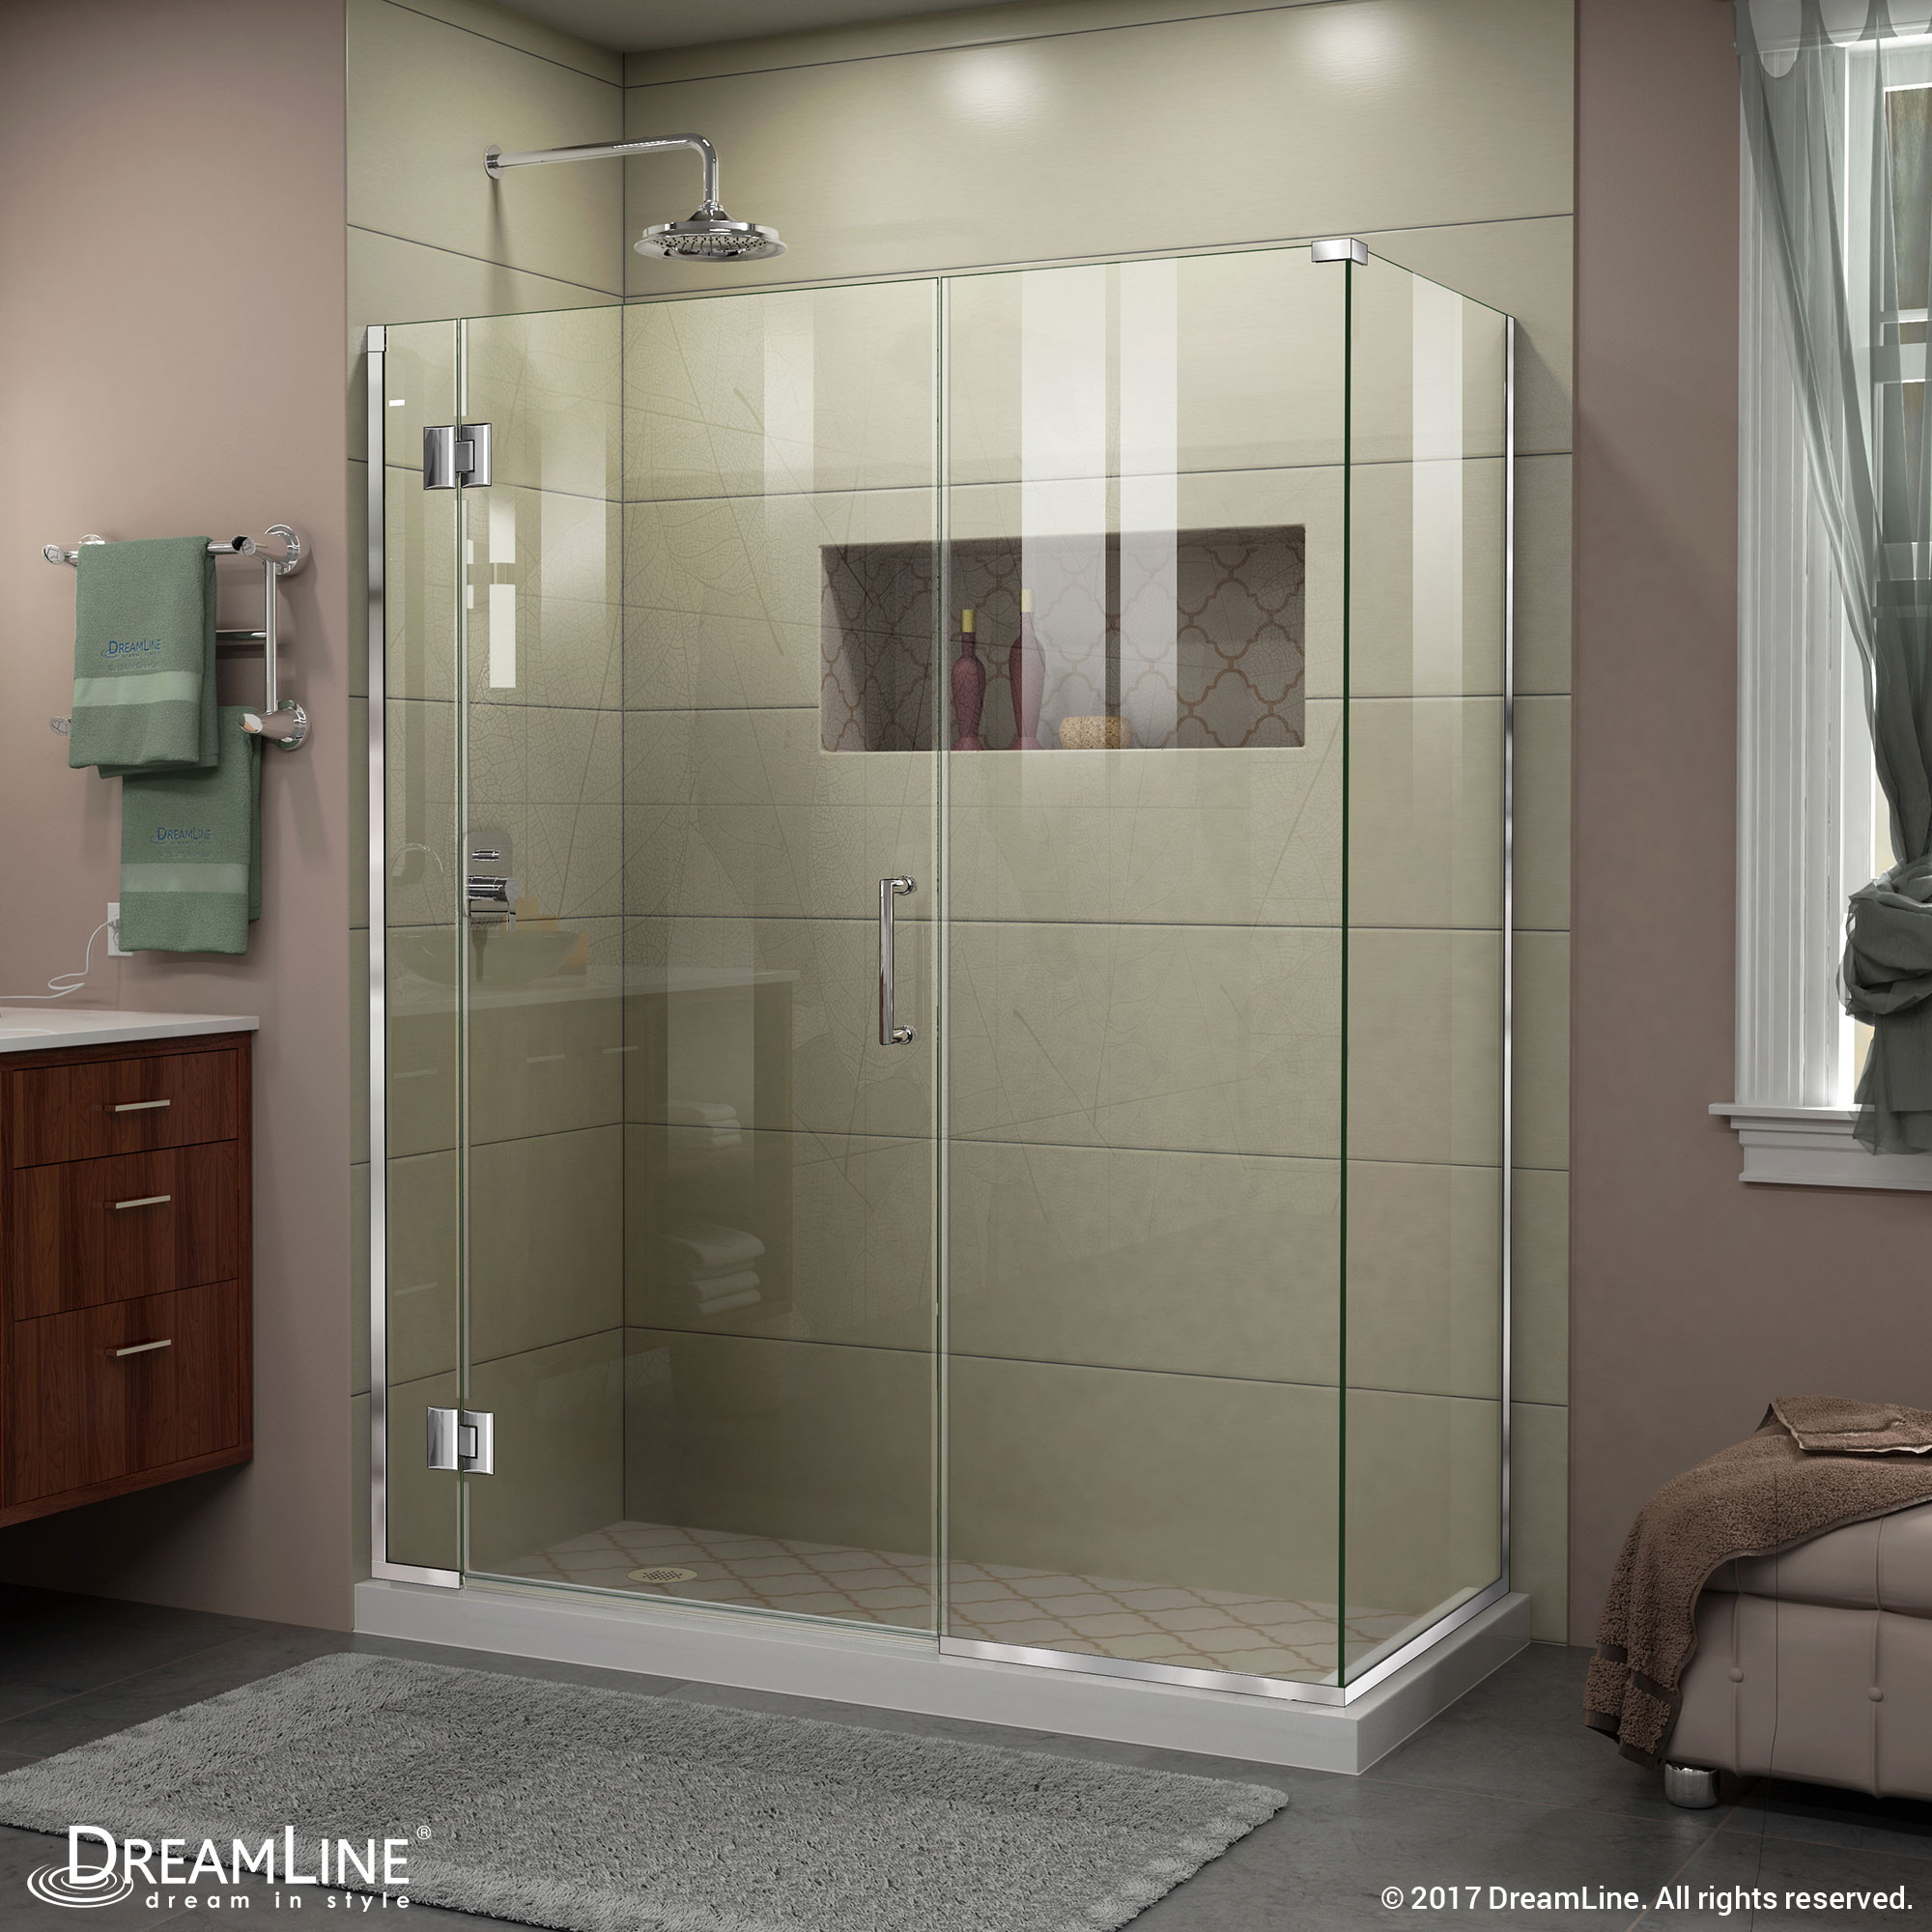 DreamLine E1302230-01 Unidoor-X Hinged Shower Enclosure In Chrome Finish